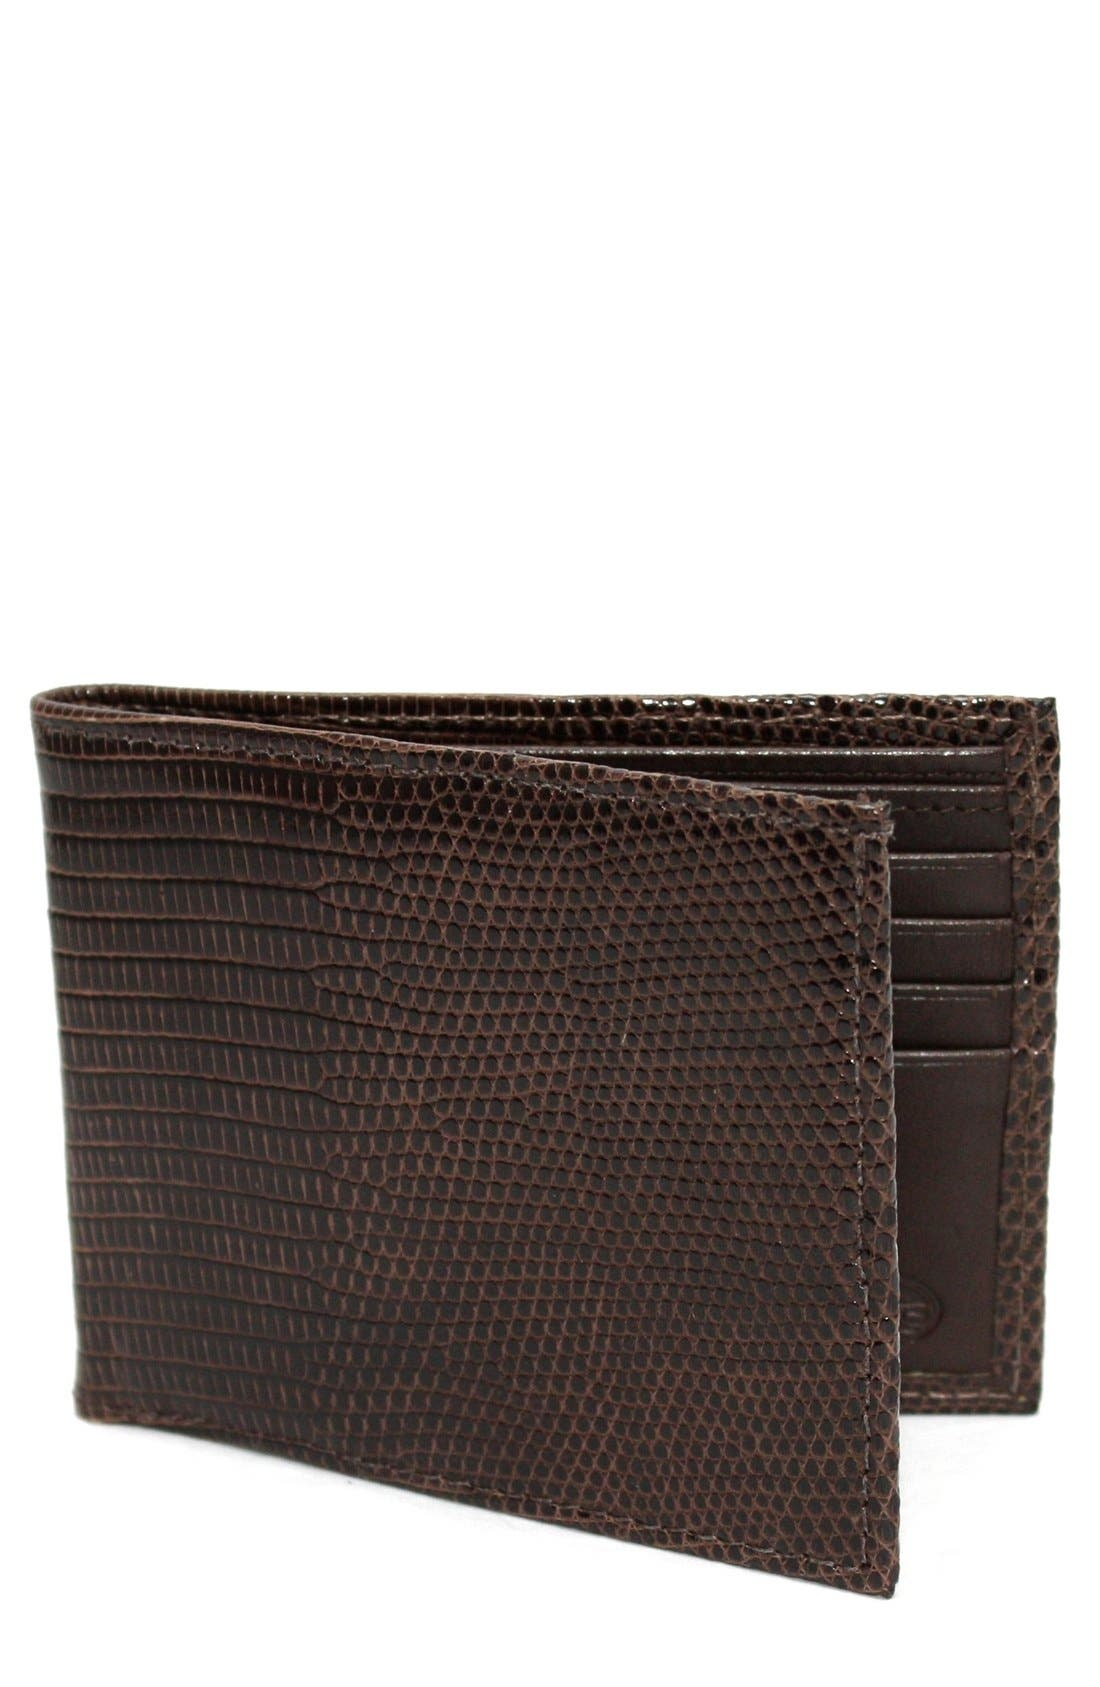 TORINO BELTS Genuine Lizard Wallet